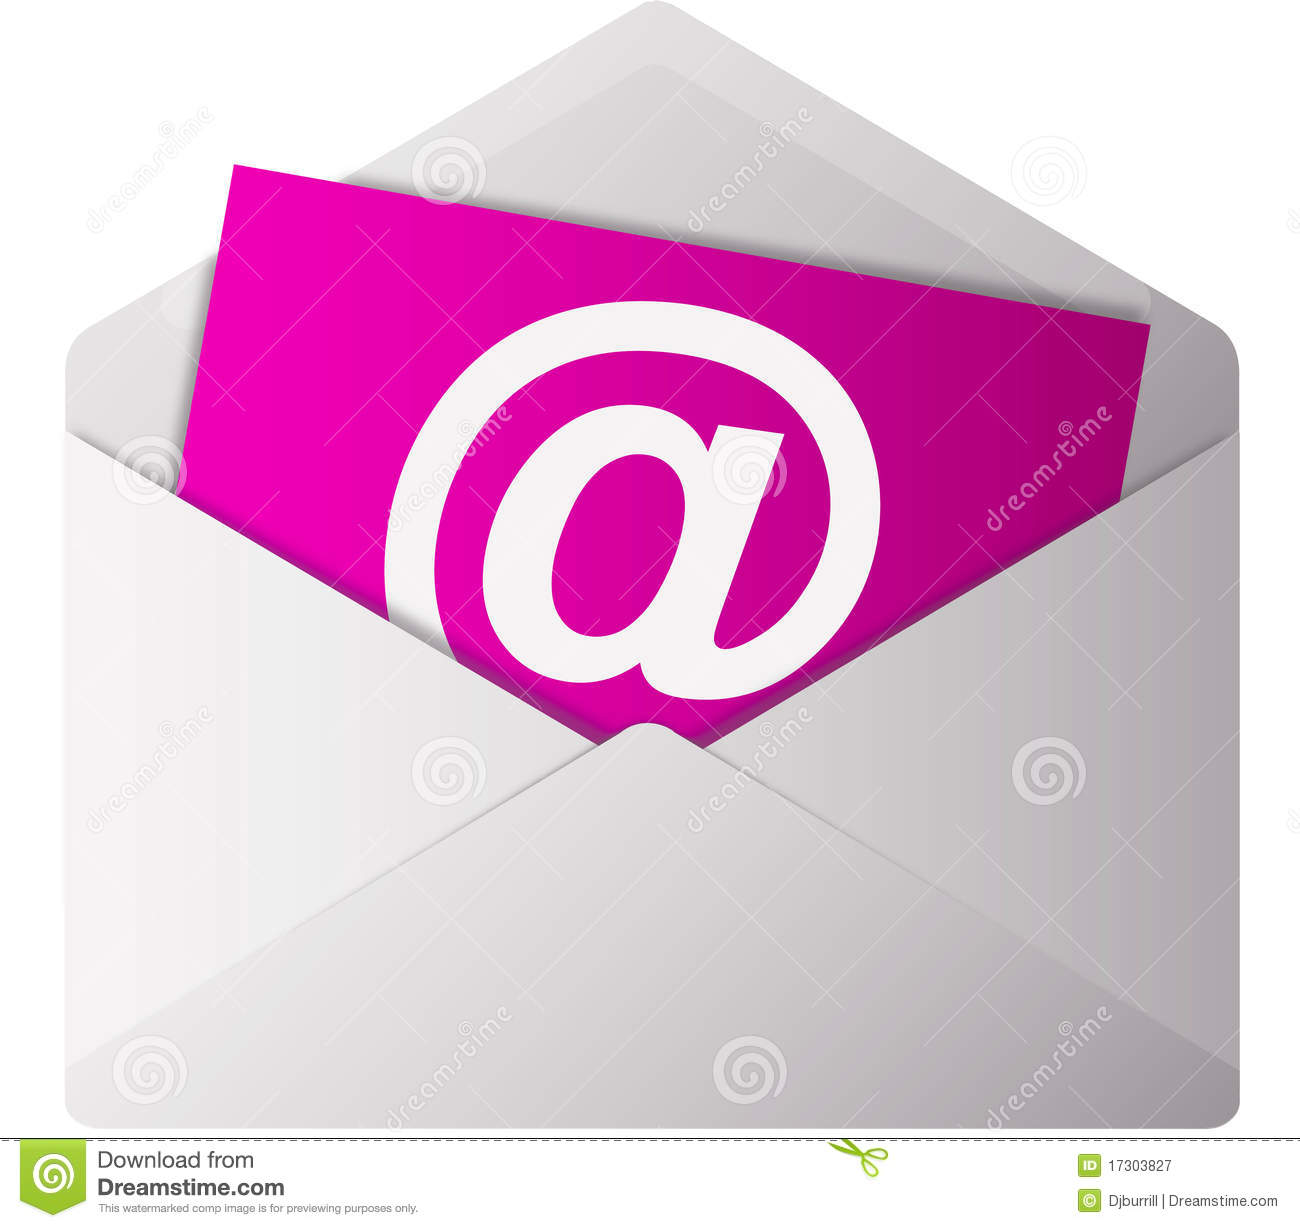 Stationery Concept With Business Cards: At Sign On Email Letter Royalty Free Stock Photography